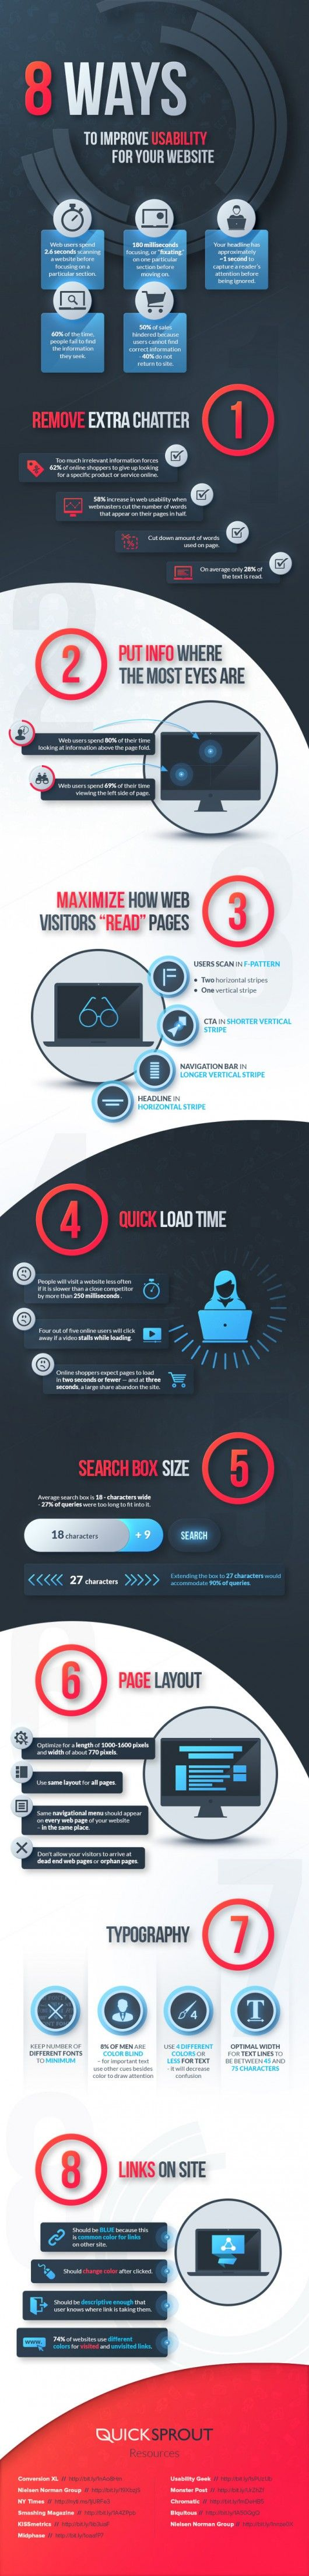 8 Ways To Improve Usability For Your Website #infographic